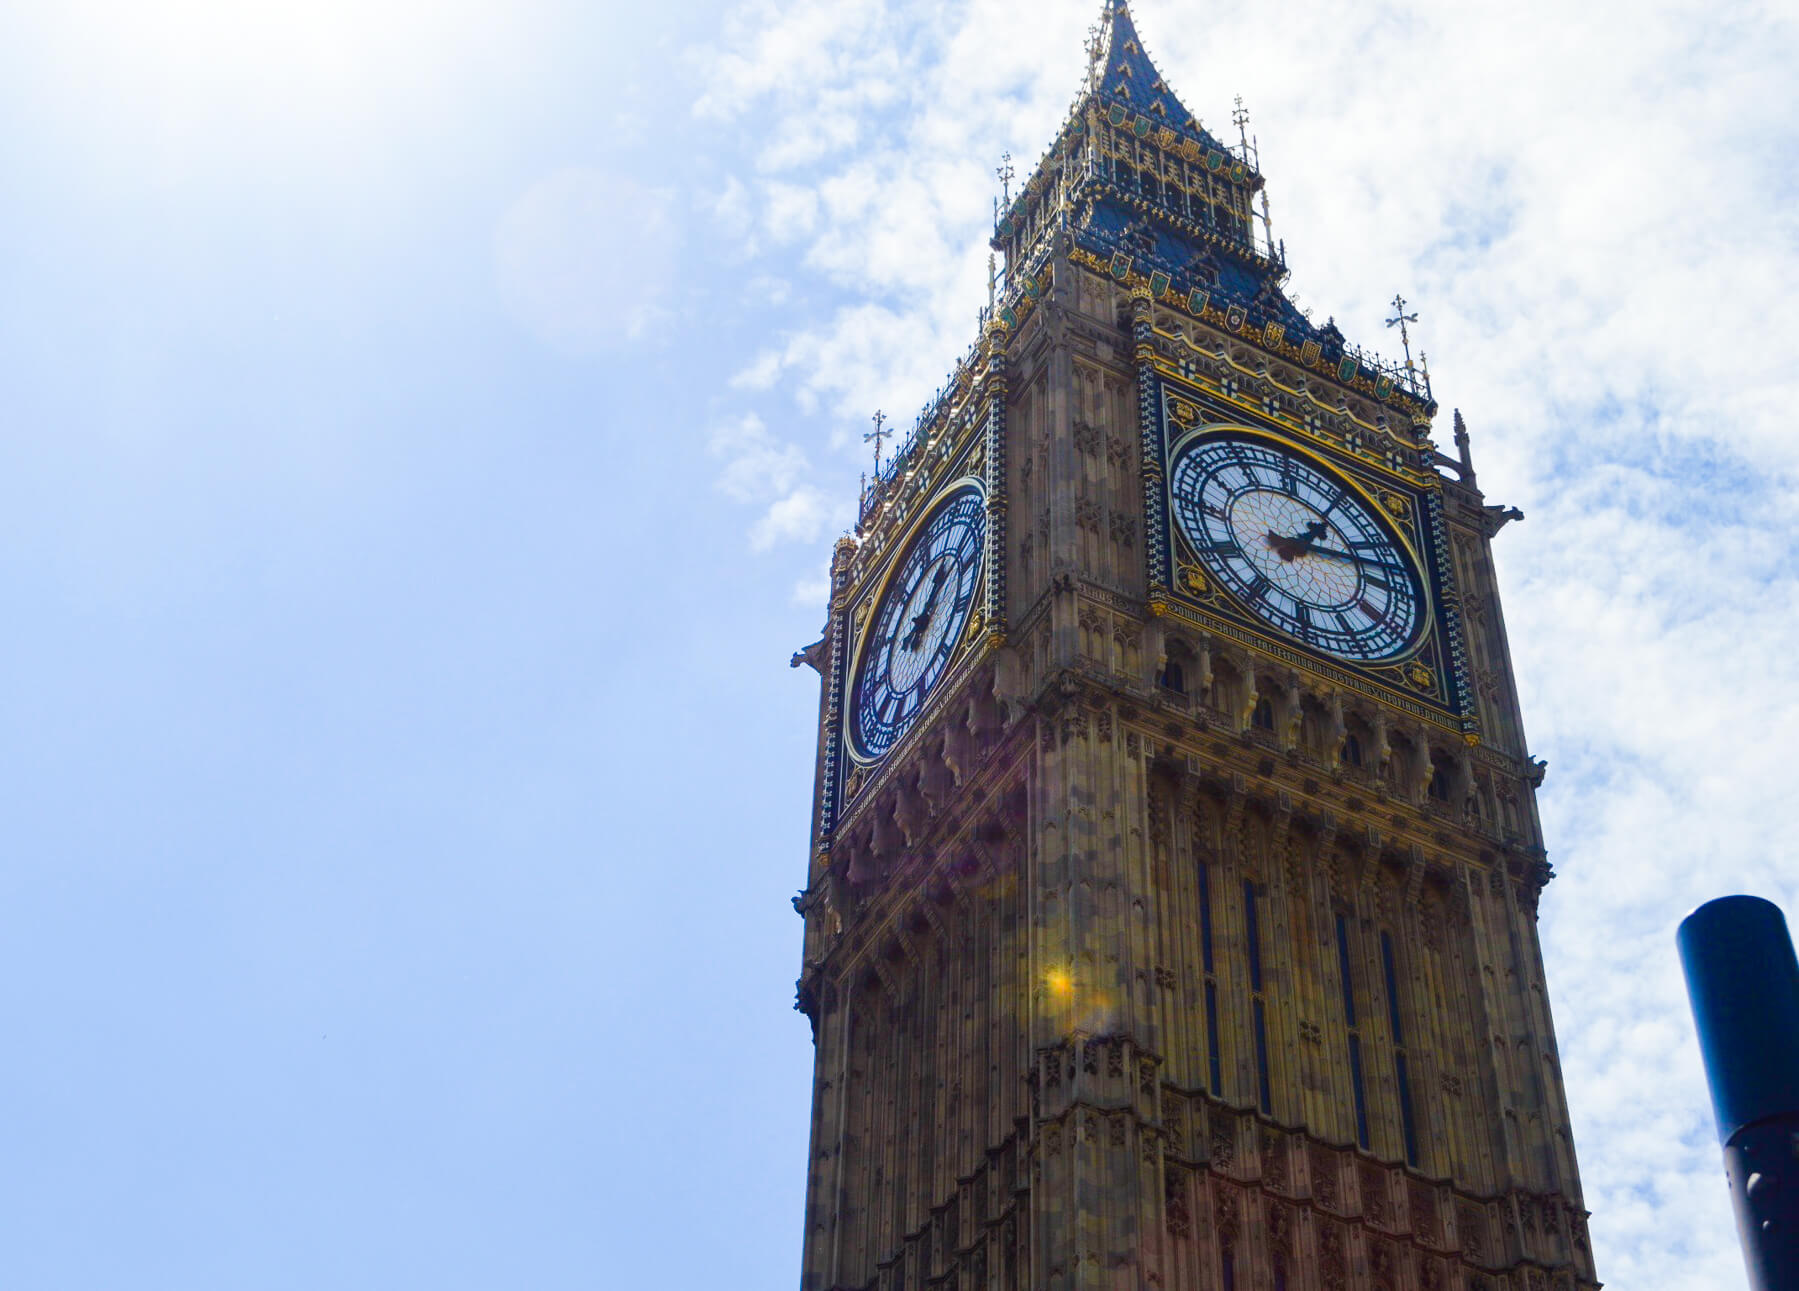 Big Ben clock tower in the sky